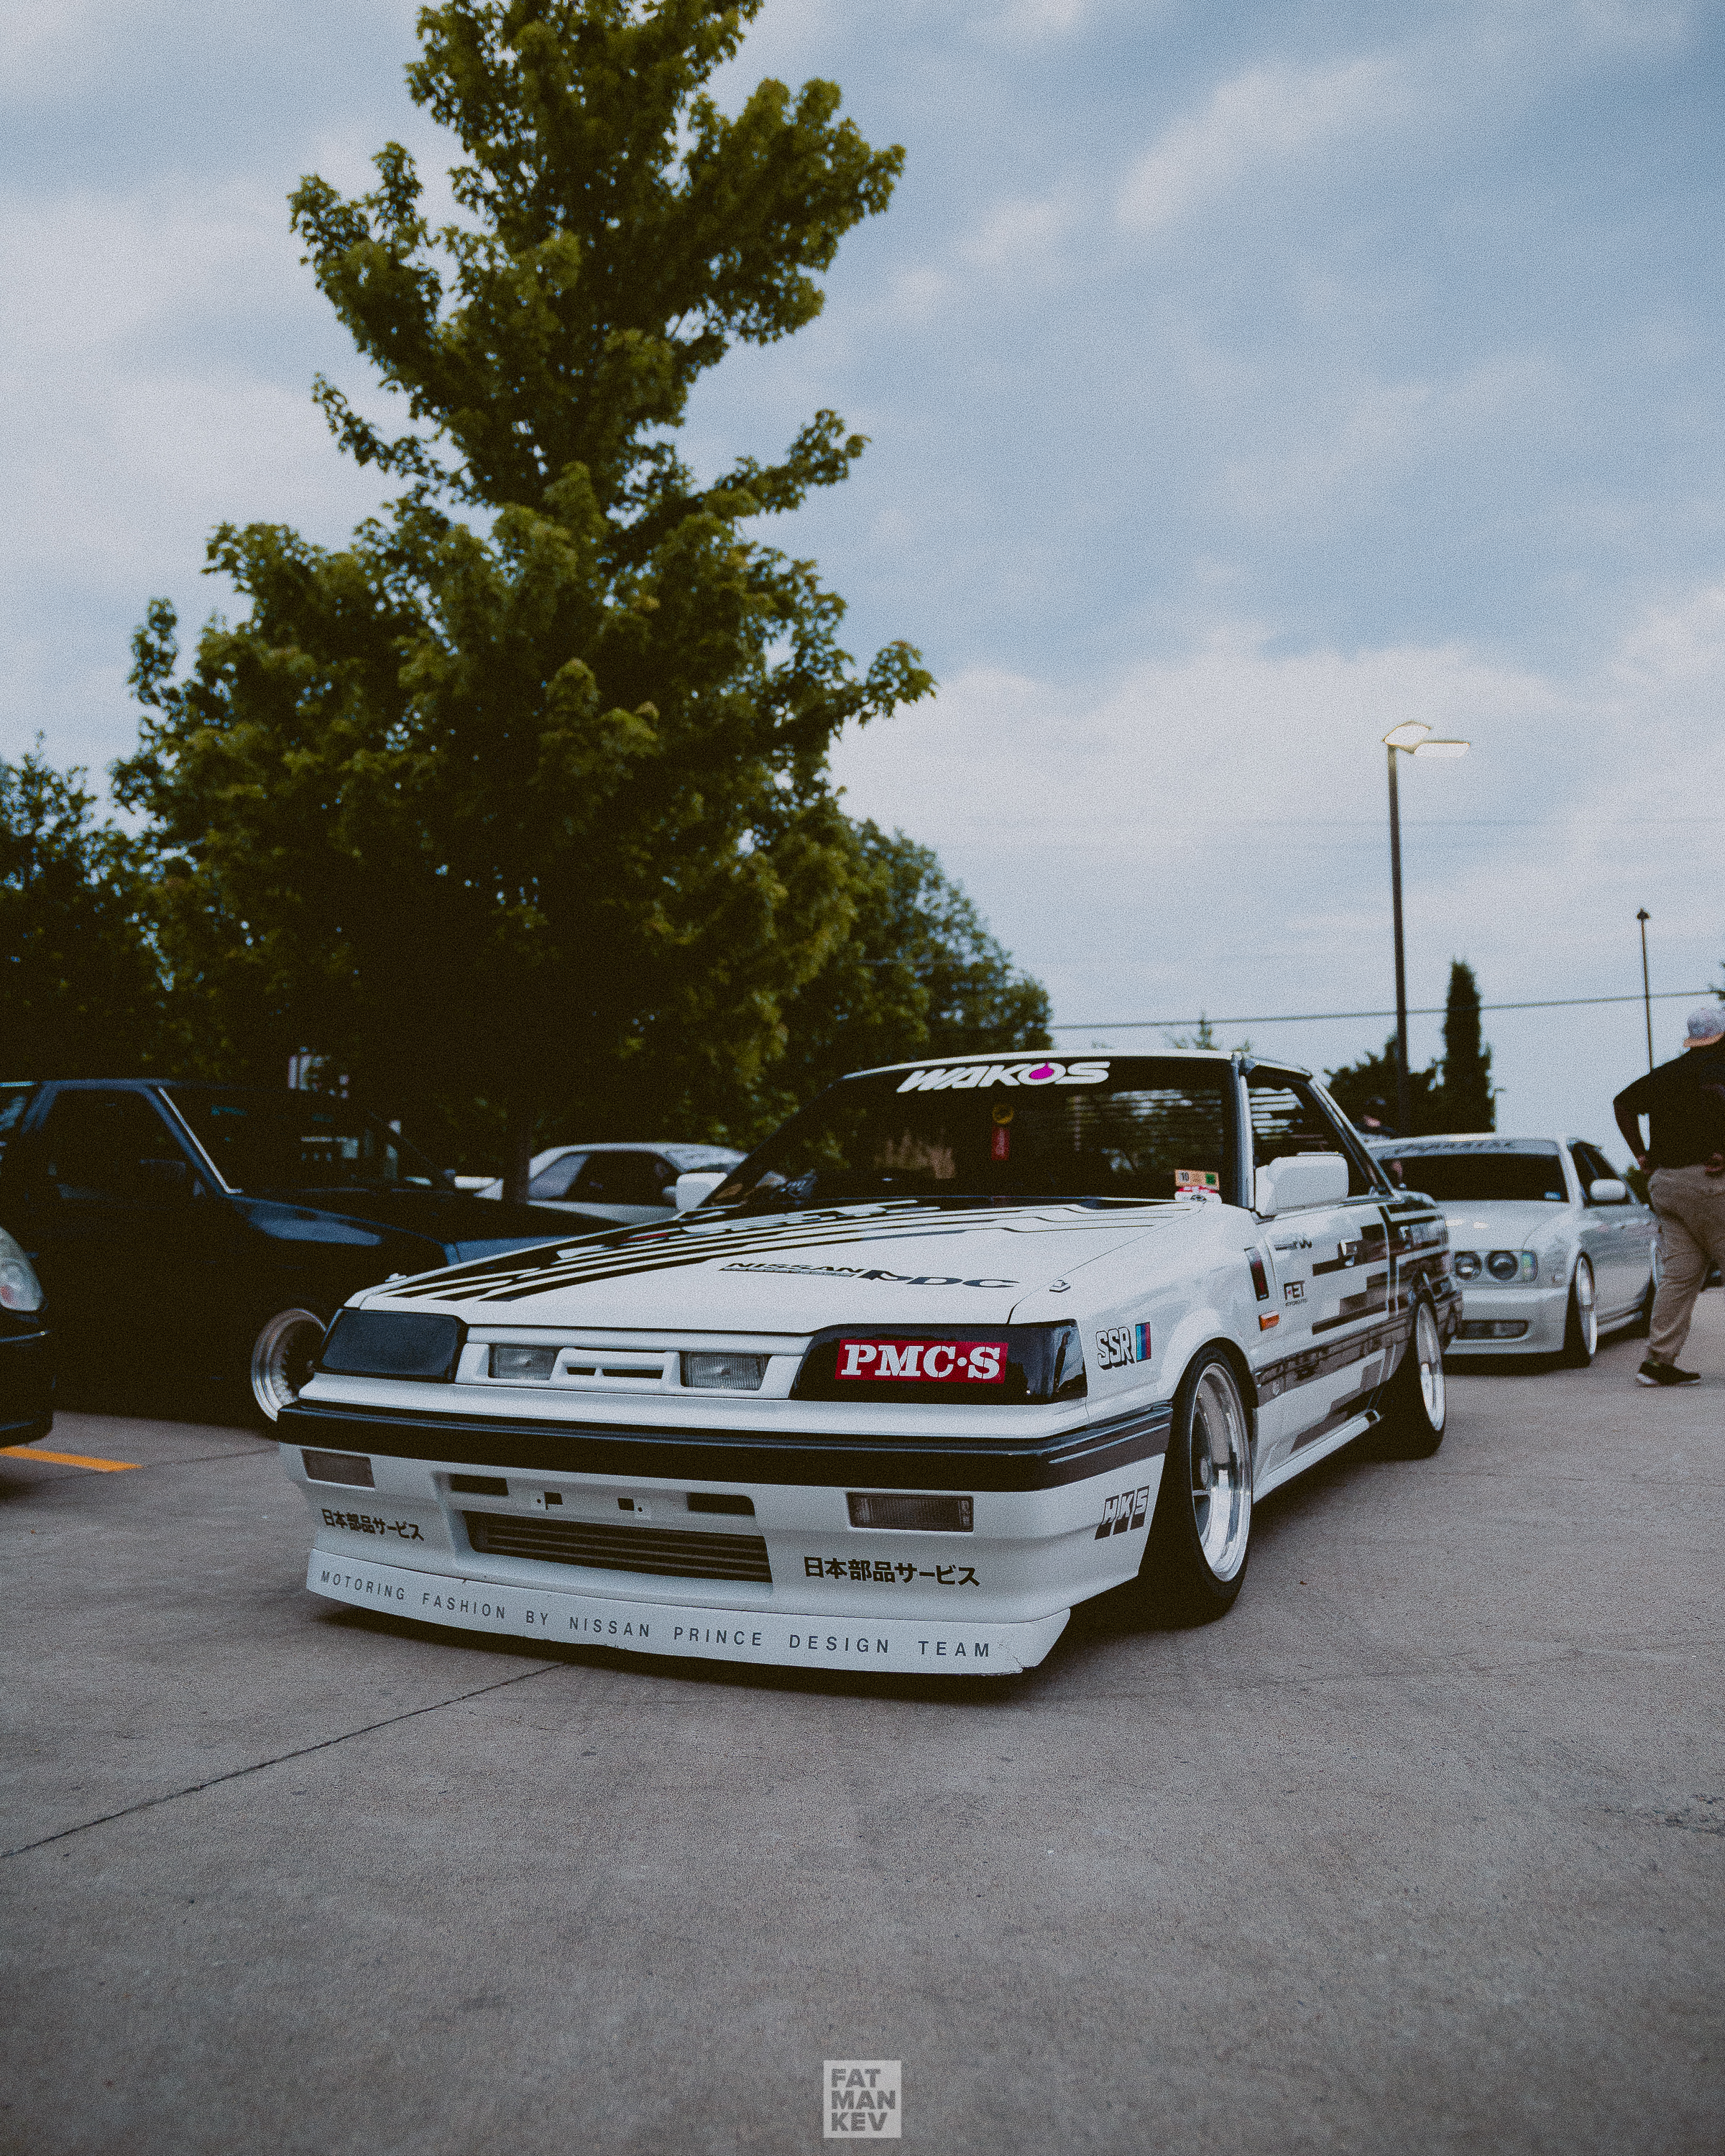 Fat Man Kev's R31 will be at our booth at SpringFest! Make sure to come say hey and help me convince him to drift it!